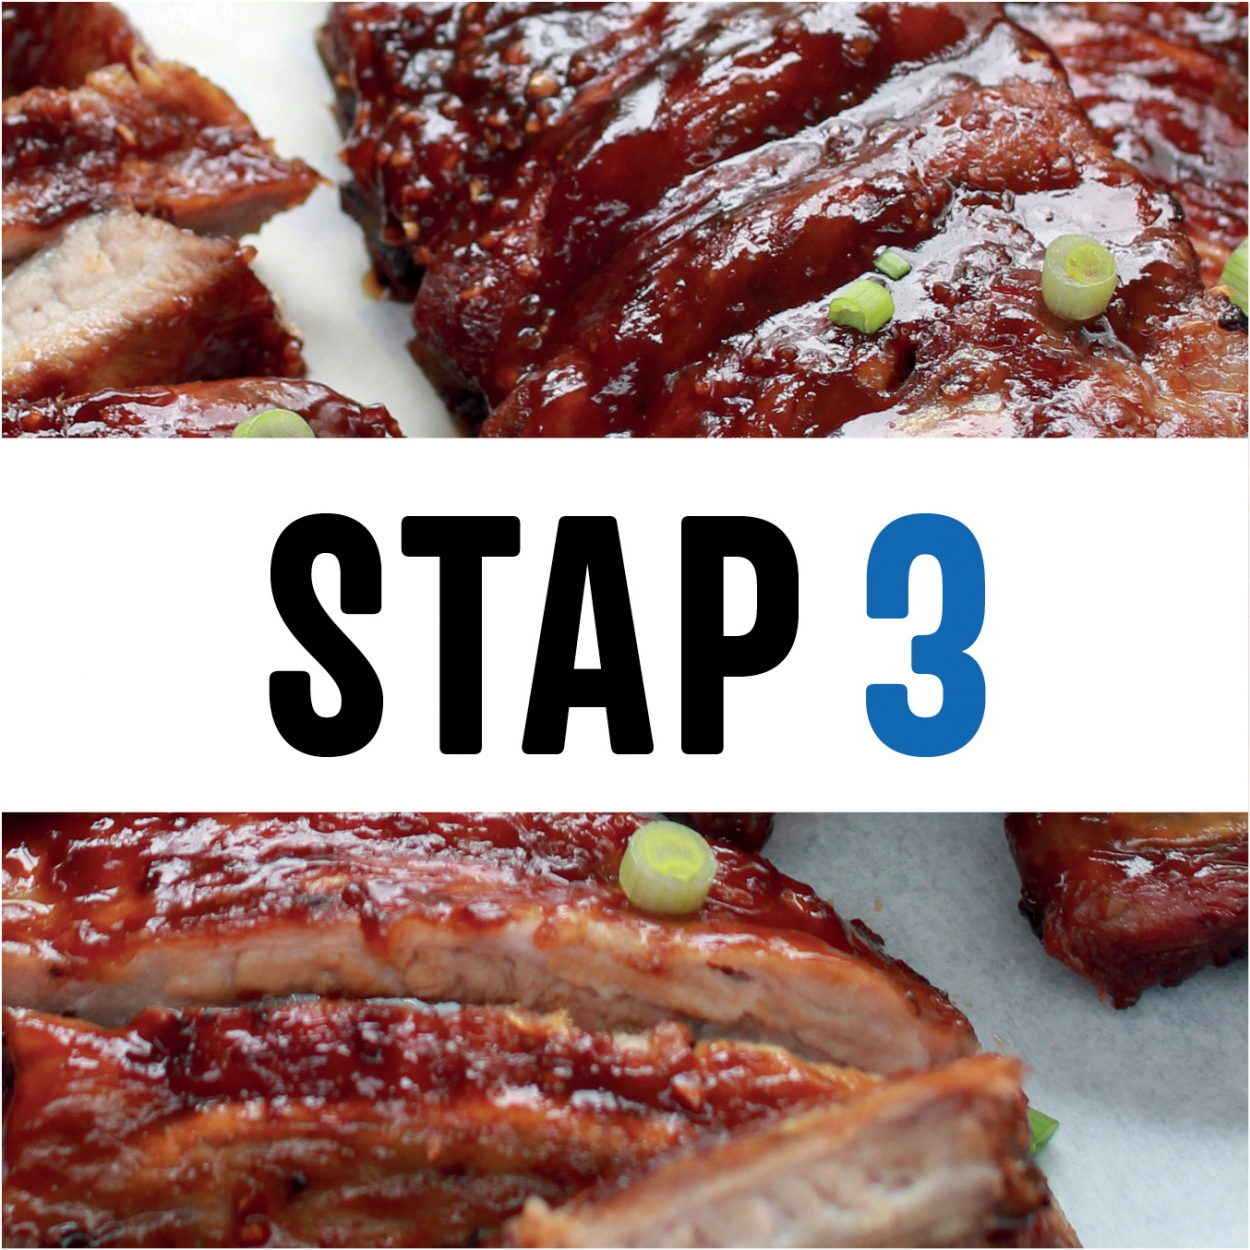 Slow Cooking BBQ_stap 3_carrefour